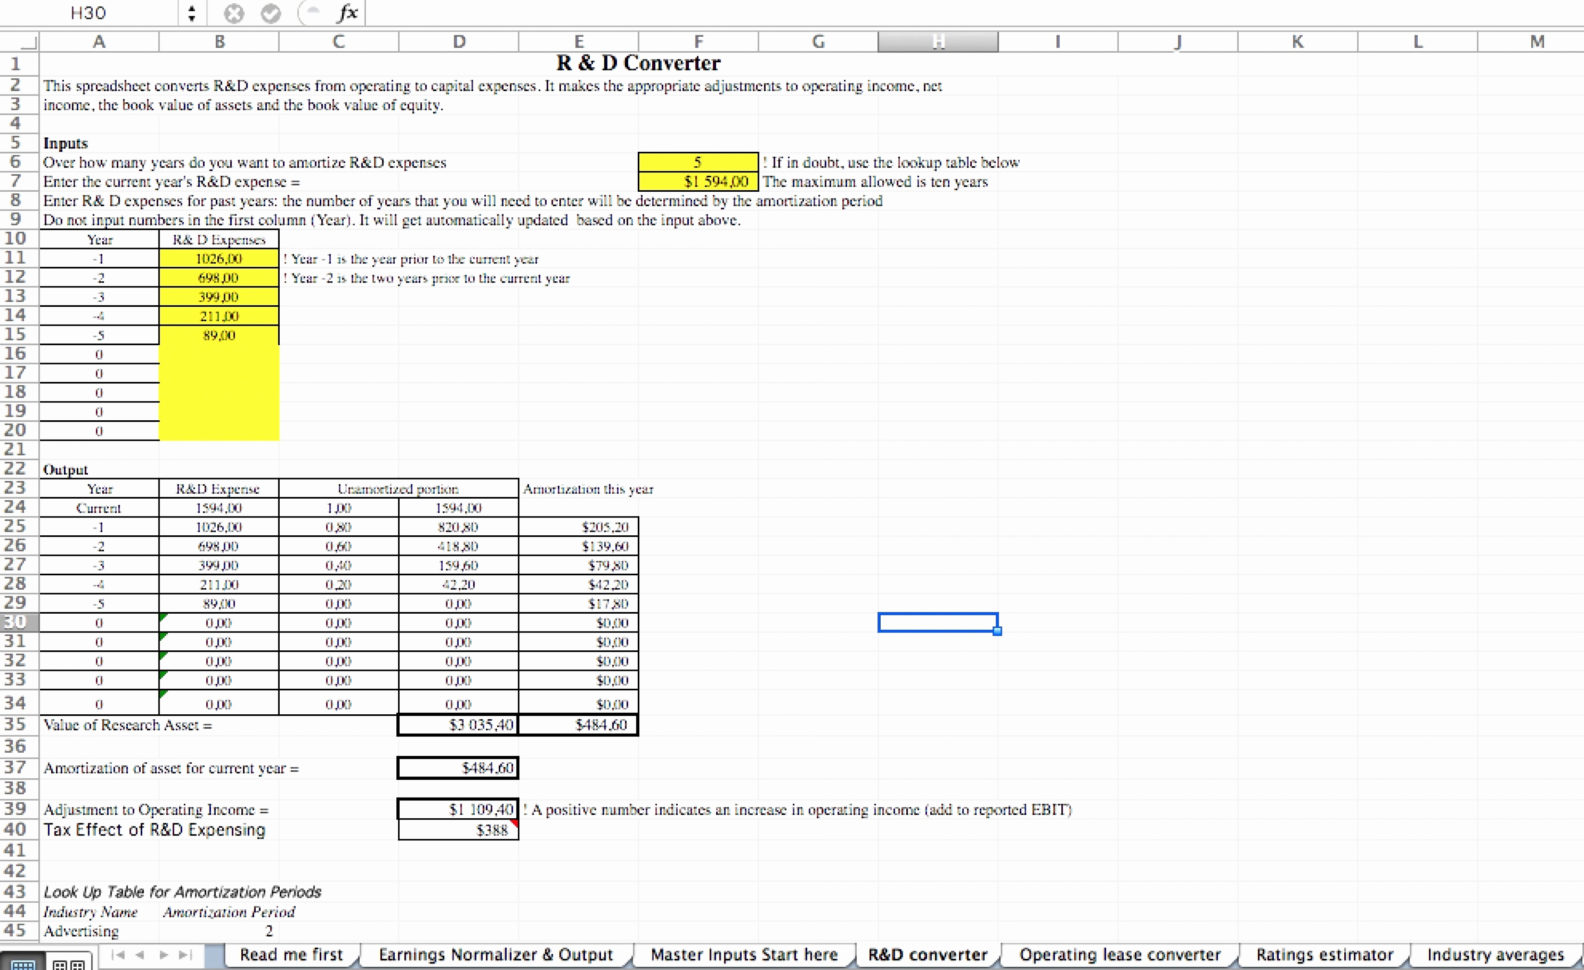 Spreadsheet Startup Printable Spreadshee Grid Spreadsheet Startup Startup Spreadsheet Template